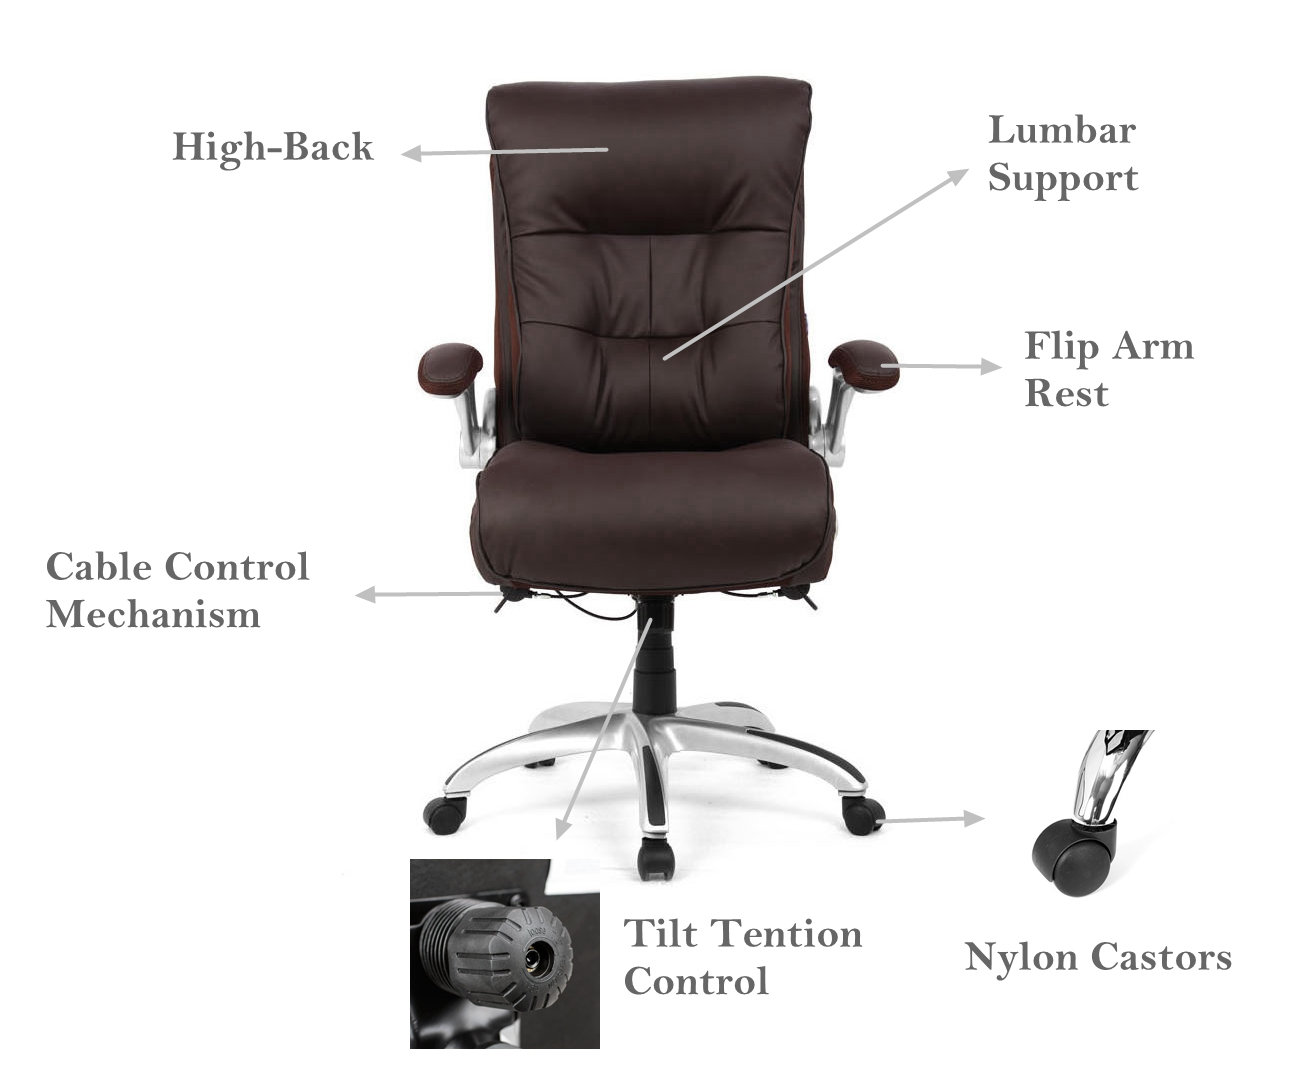 Big and Tall Office Chair With Flip Armrest , Capacity Support 400 High Office Chair on high school chairs, high chiavari chairs, high top chairs, executive chairs, high living room chairs, high waiting room chairs, high accent chairs, high chairs product, drafting chairs, discounted ergonomic mesh computer chairs, high beach chairs, high laboratory chairs, high foot stools, high futons, high mattresses, high bar chairs, high outdoor patio furniture, high shop chairs, high desk chairs with backs, tall back chairs,